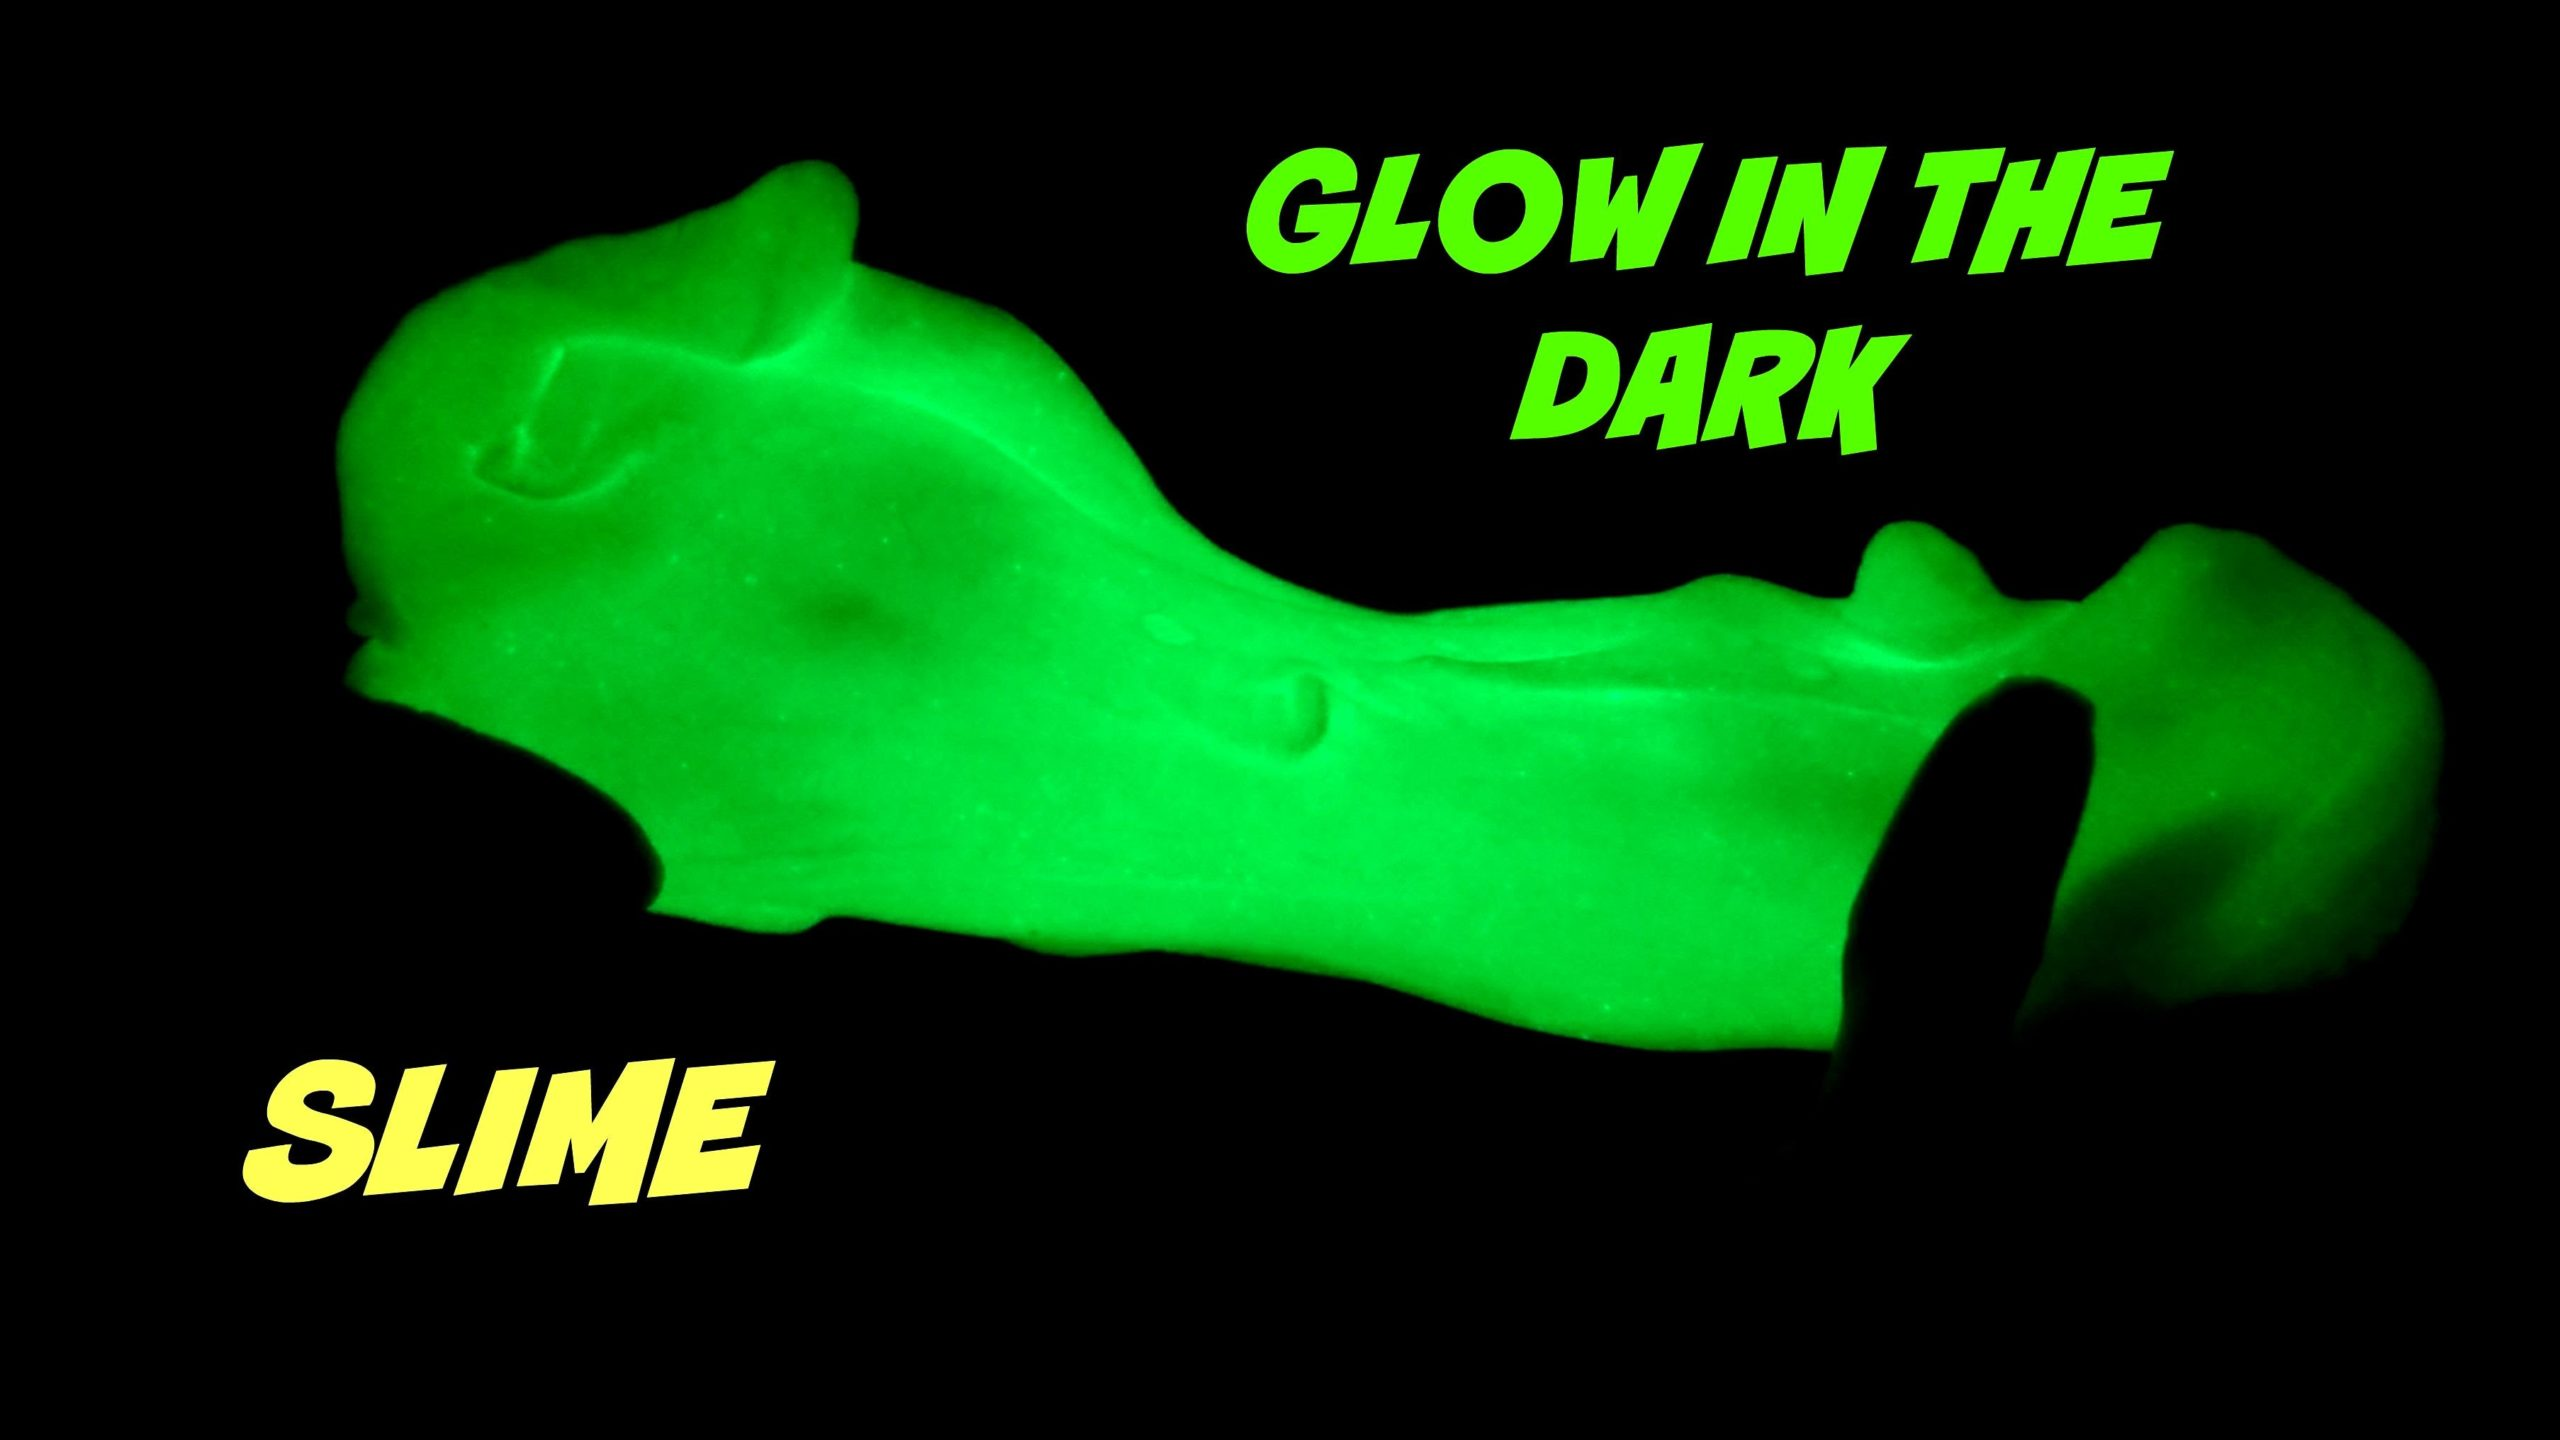 Slime Workshop - Glow in the Dark